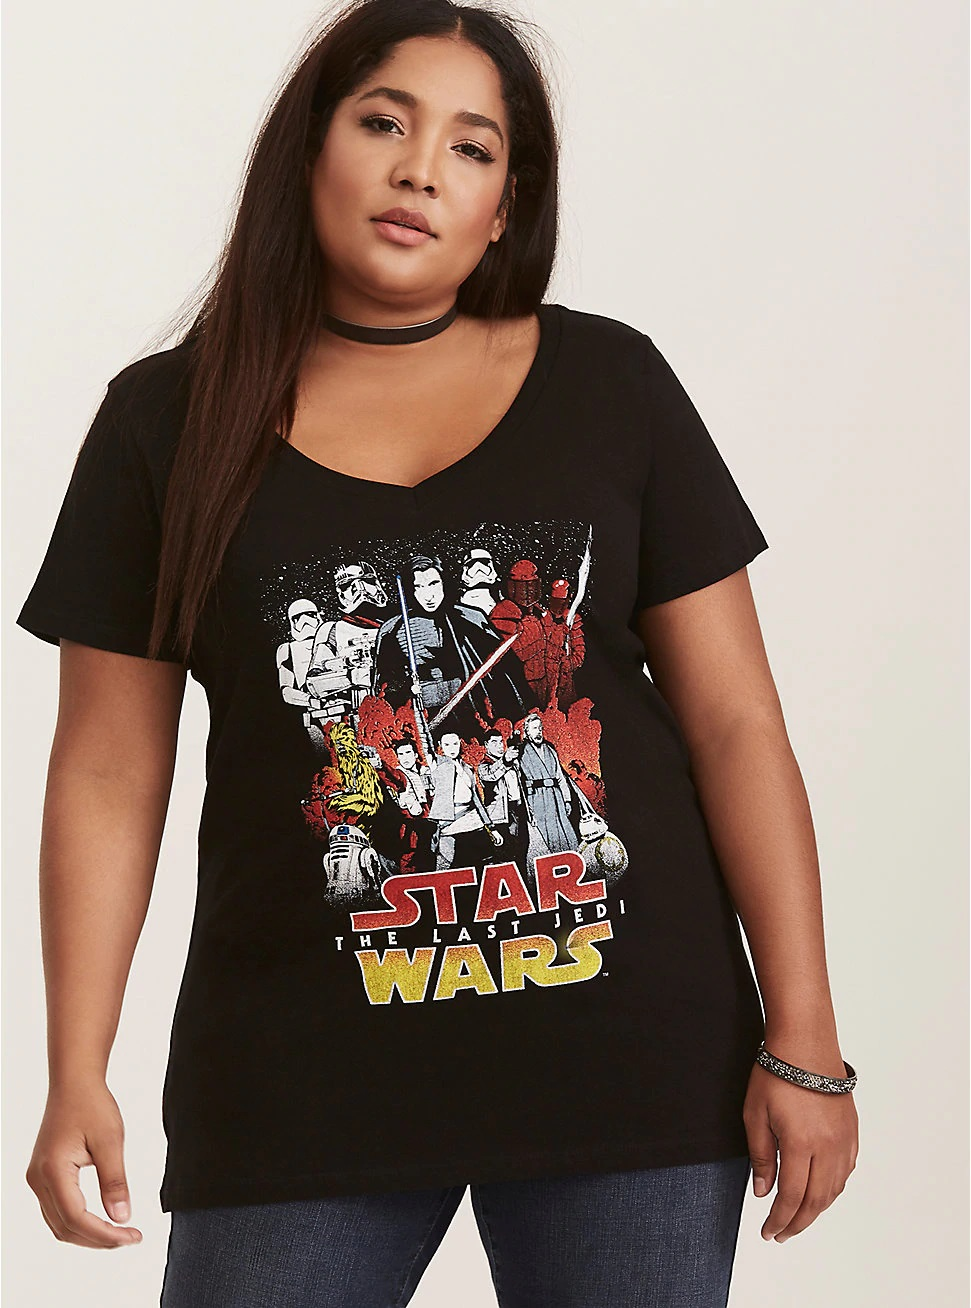 Women's Star Wars Fashion on Sale at Torrid - One Day 35% off Flash Sale